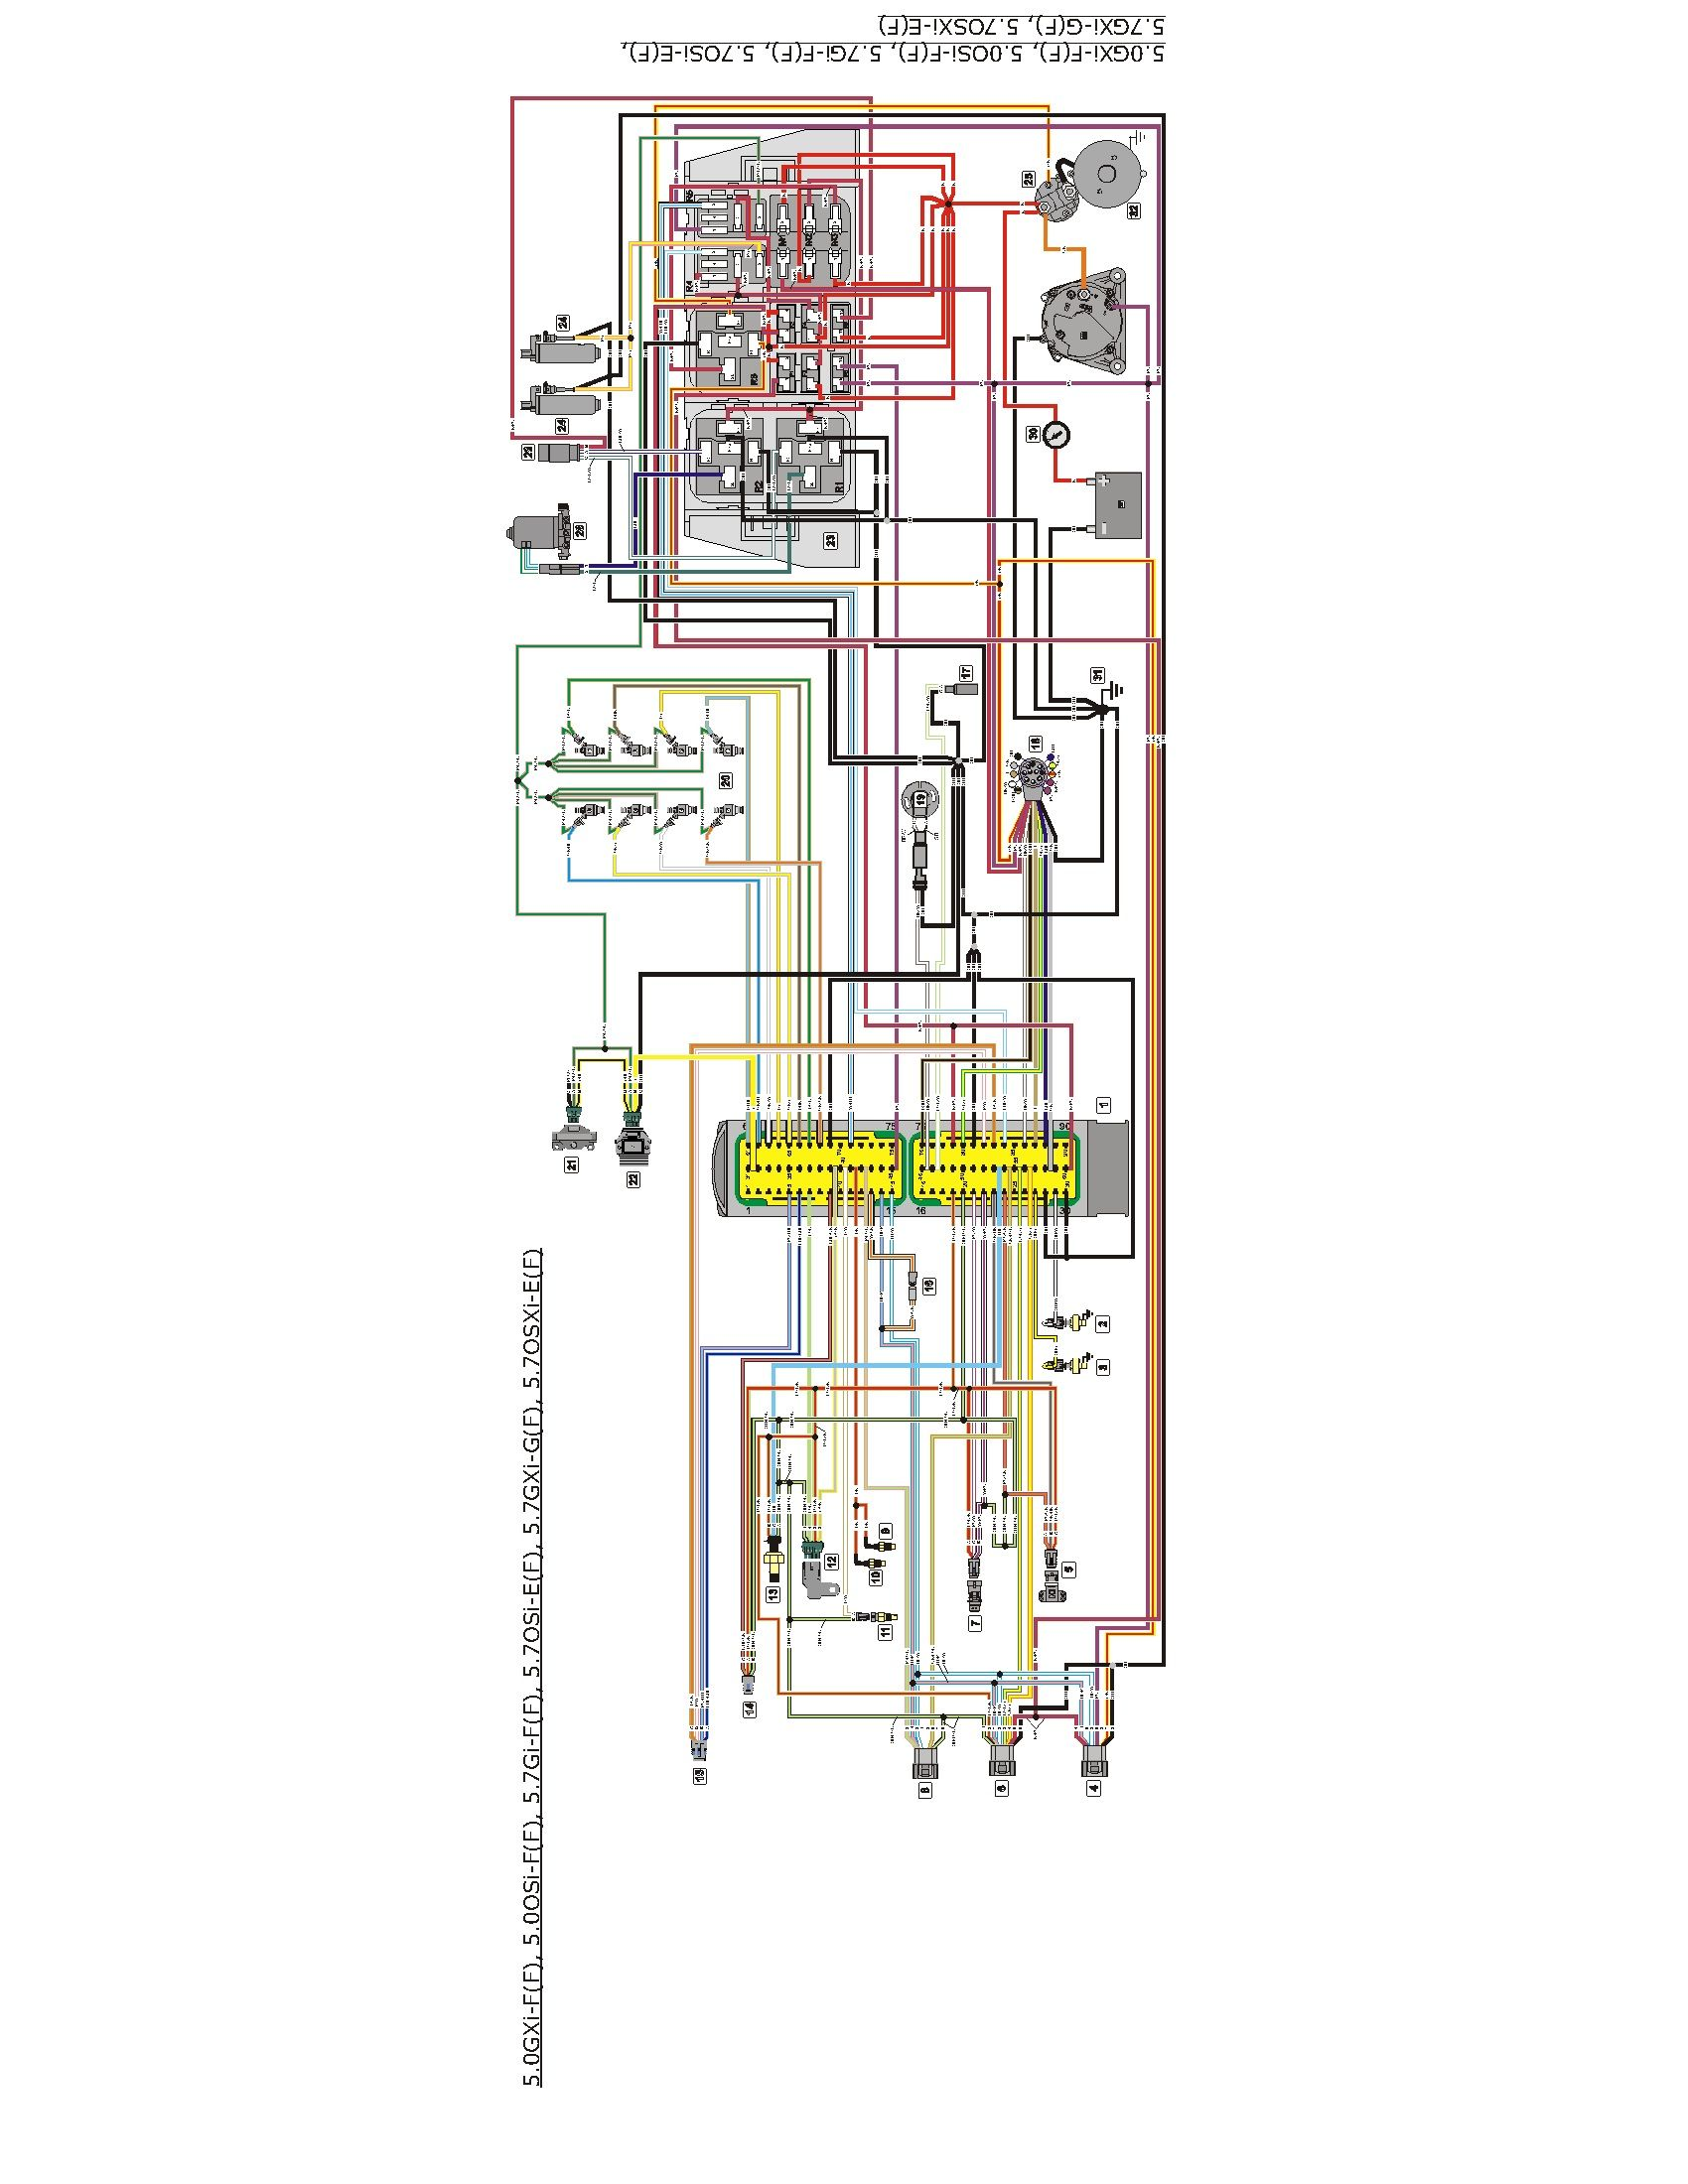 small resolution of volvo penta 5 7 engine wiring diagram boat pinterest volvo rh pinterest com volvo d12 engine